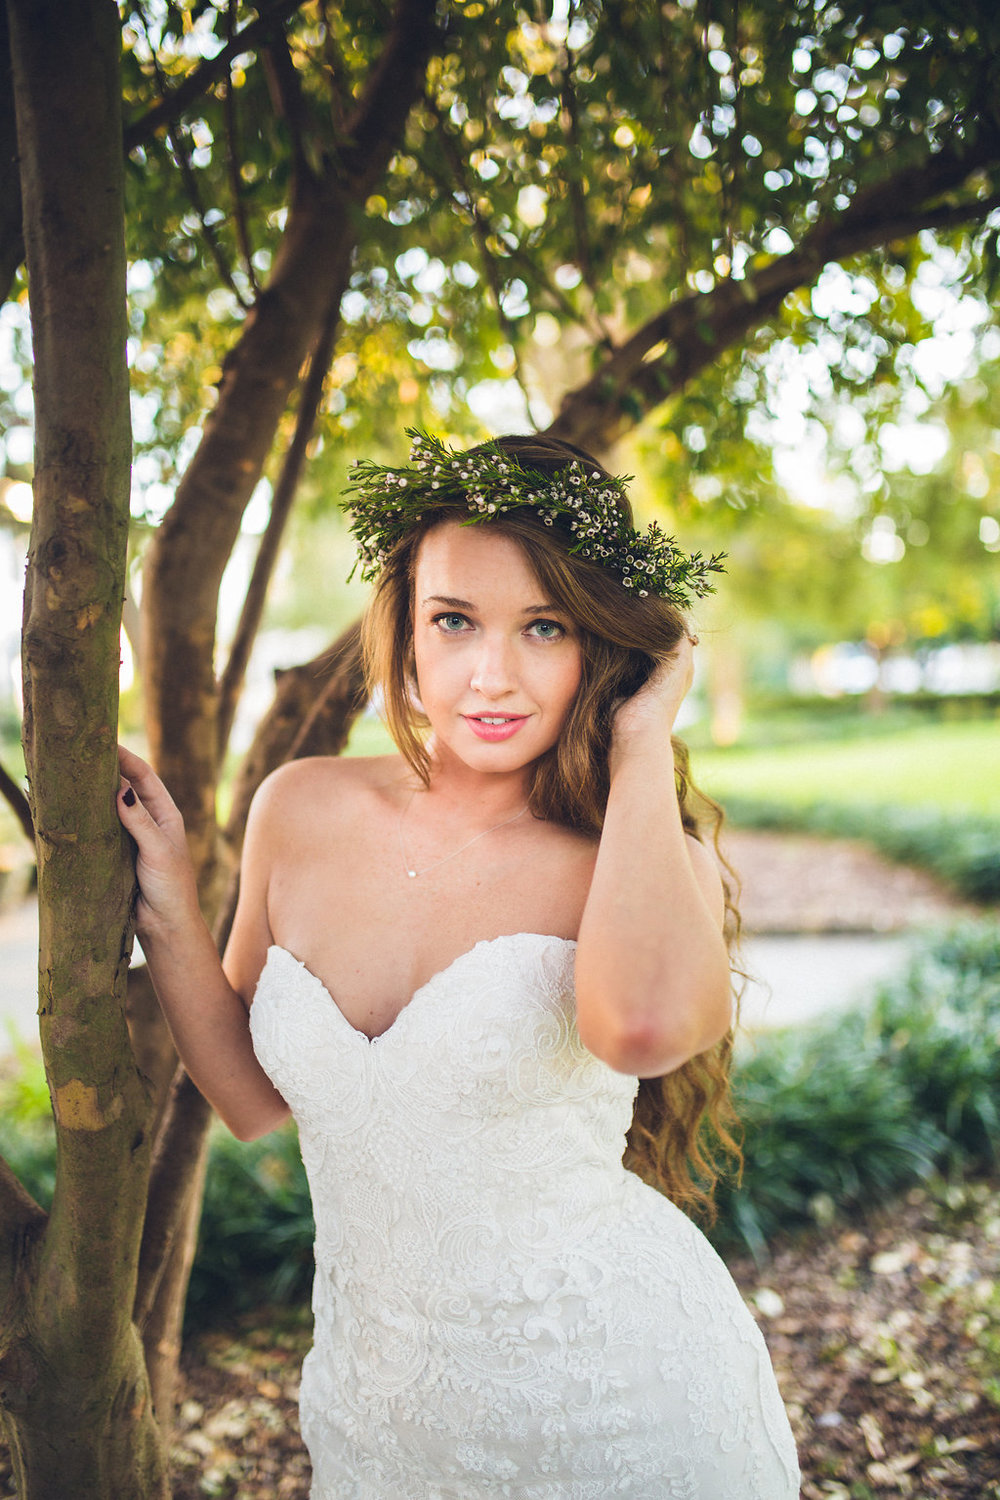 alexis-sweet-photography-ivory-and-beau-bridal-boutique-mirelle--maggie-sottero-rebecca-ingram-lace-mermaid-savannah-wedding-savannah-square-wedding-flower-crown-boho-bride-savannah-wedding-planner-savannah-bridal-boutique-savannah-florist-14.jpg